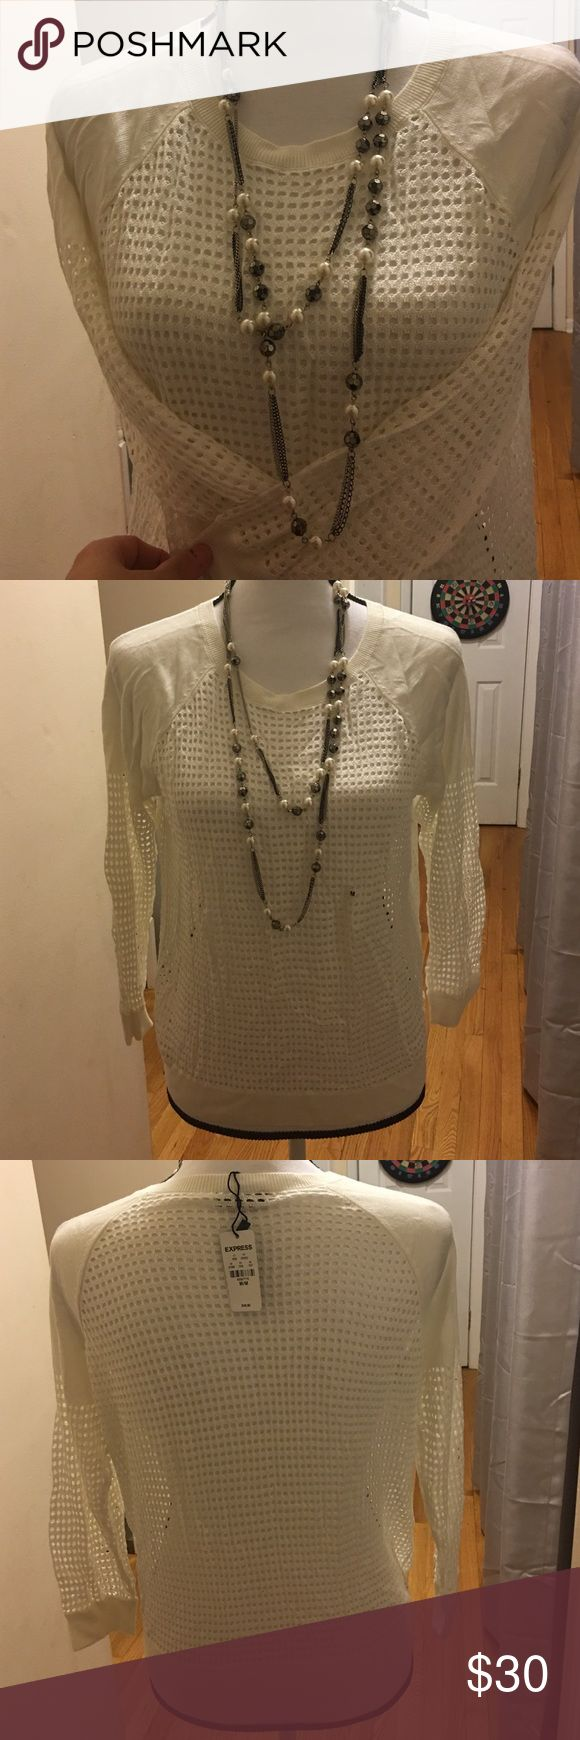 Fish net like long sleeve top White fish net like top. Long sleeves. Very cute and nice quality top. NWT Express Tops